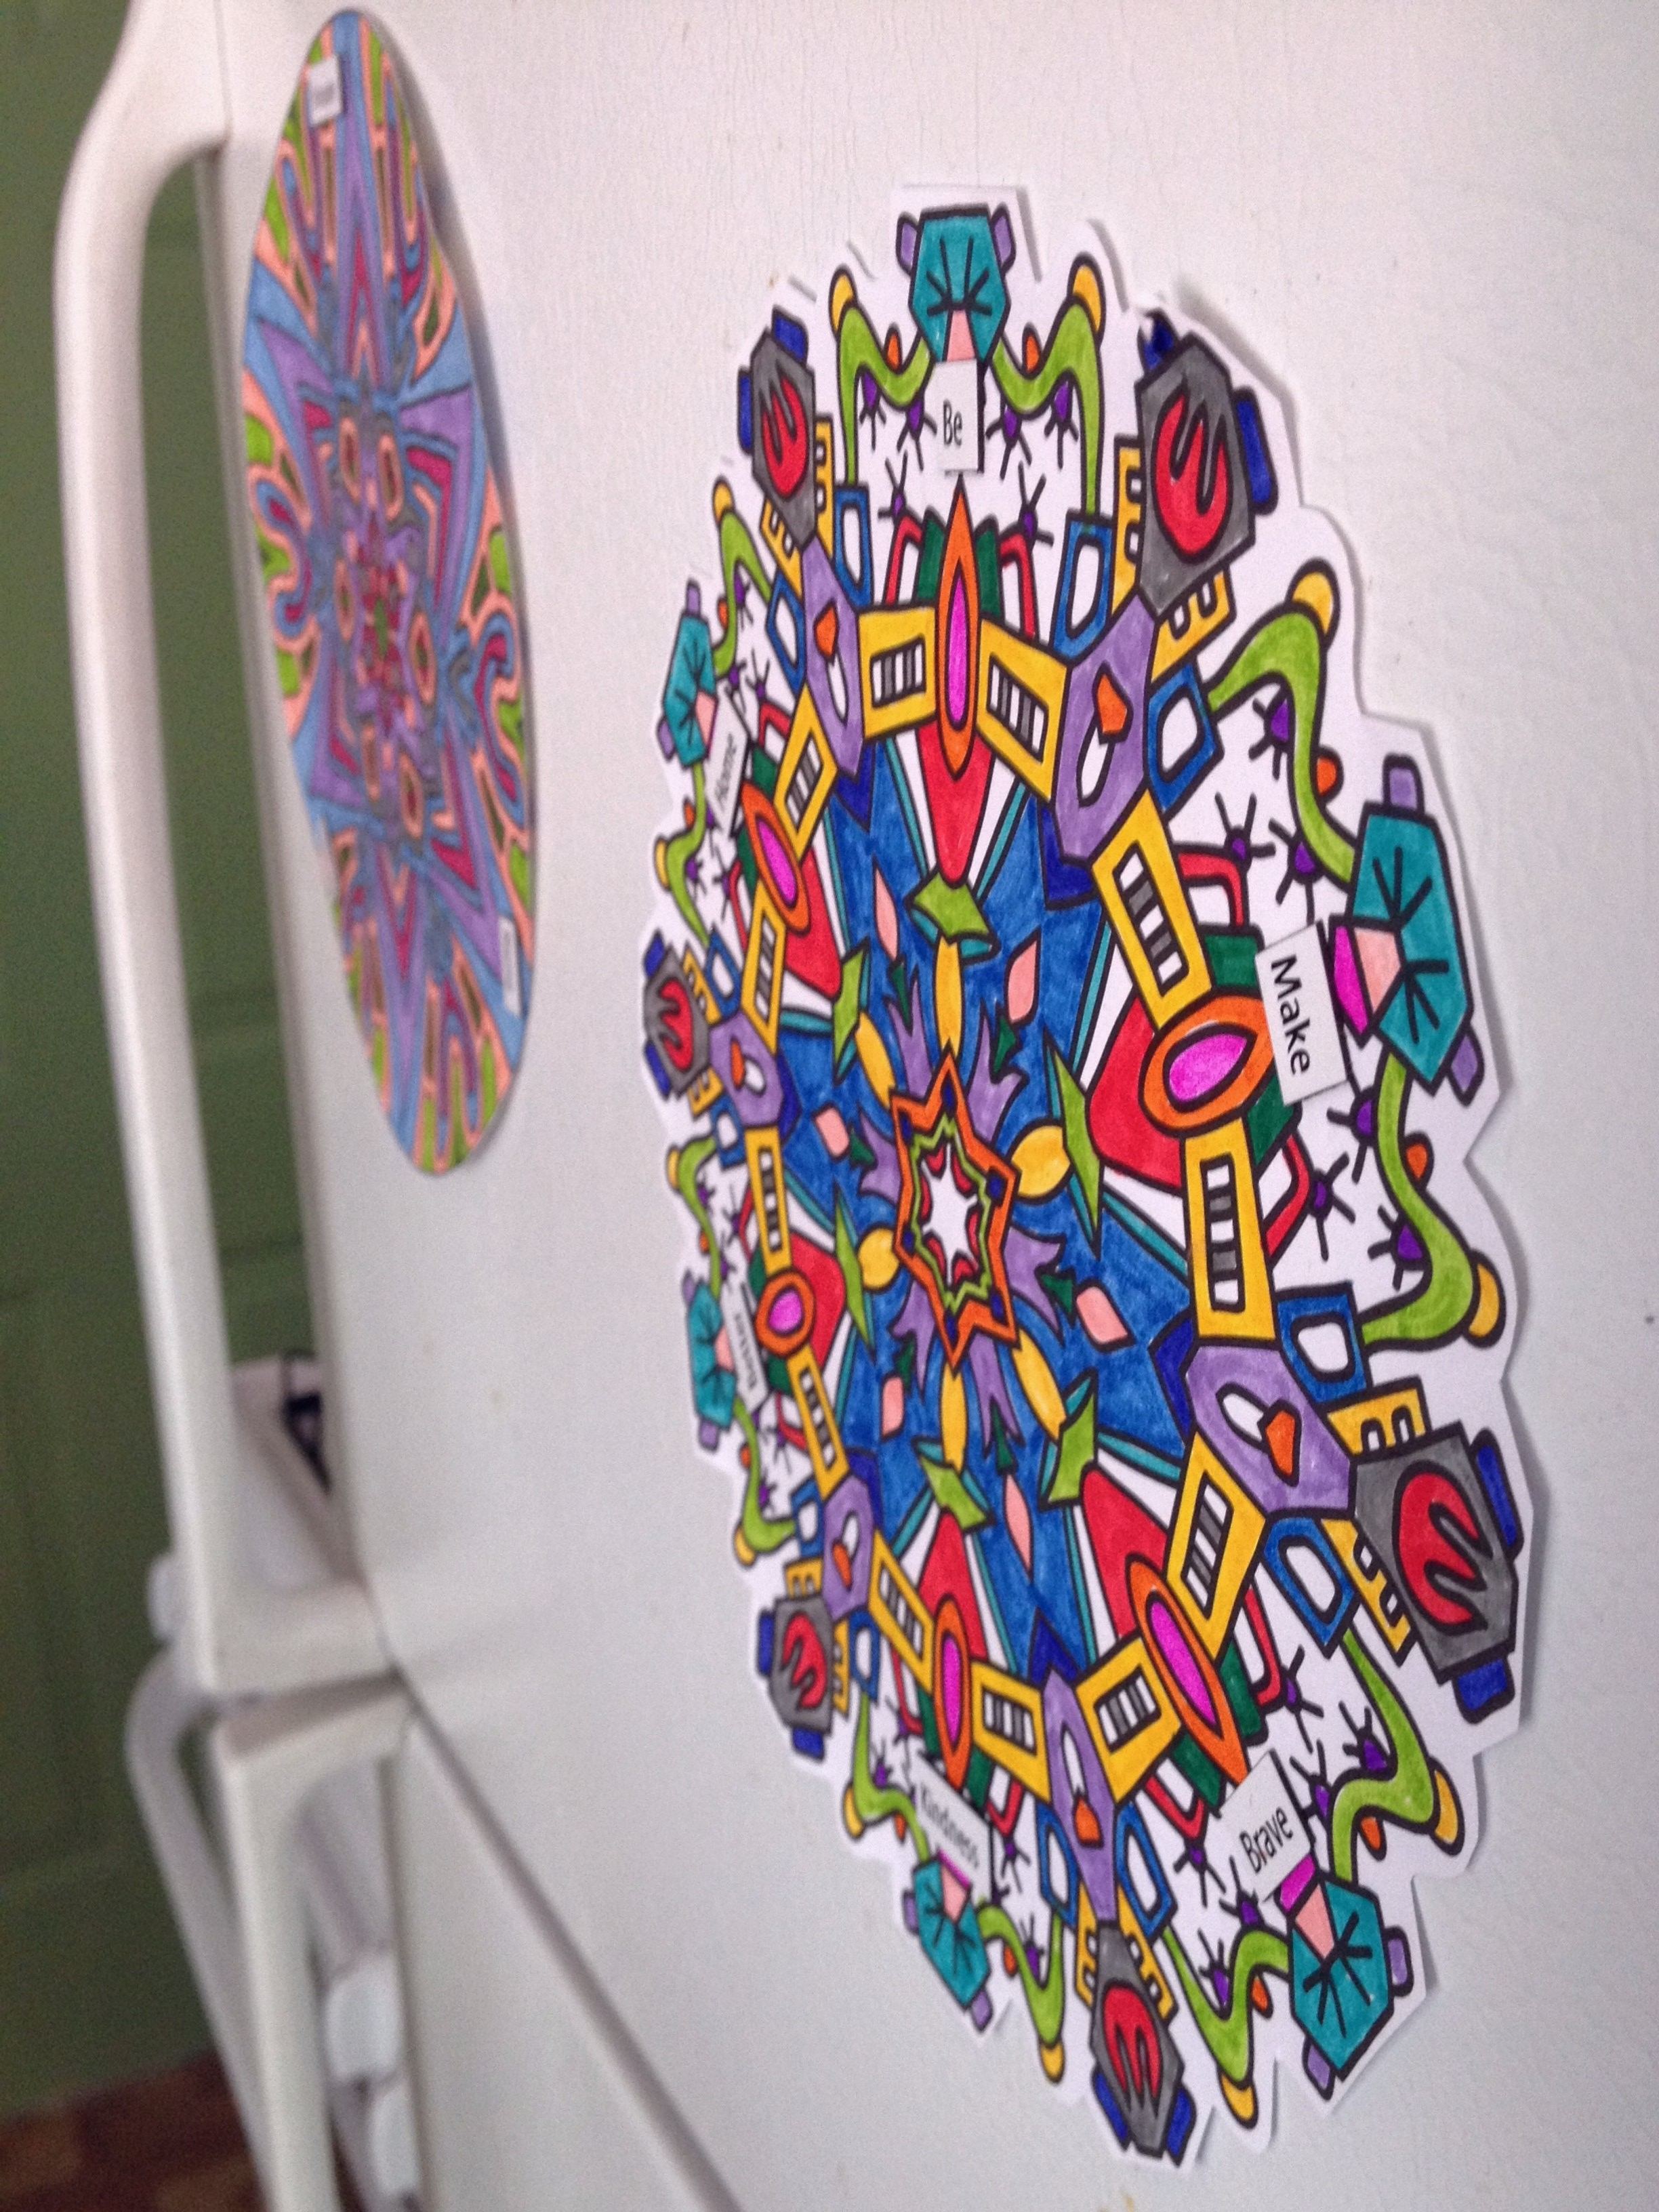 colored mandalas on fridge